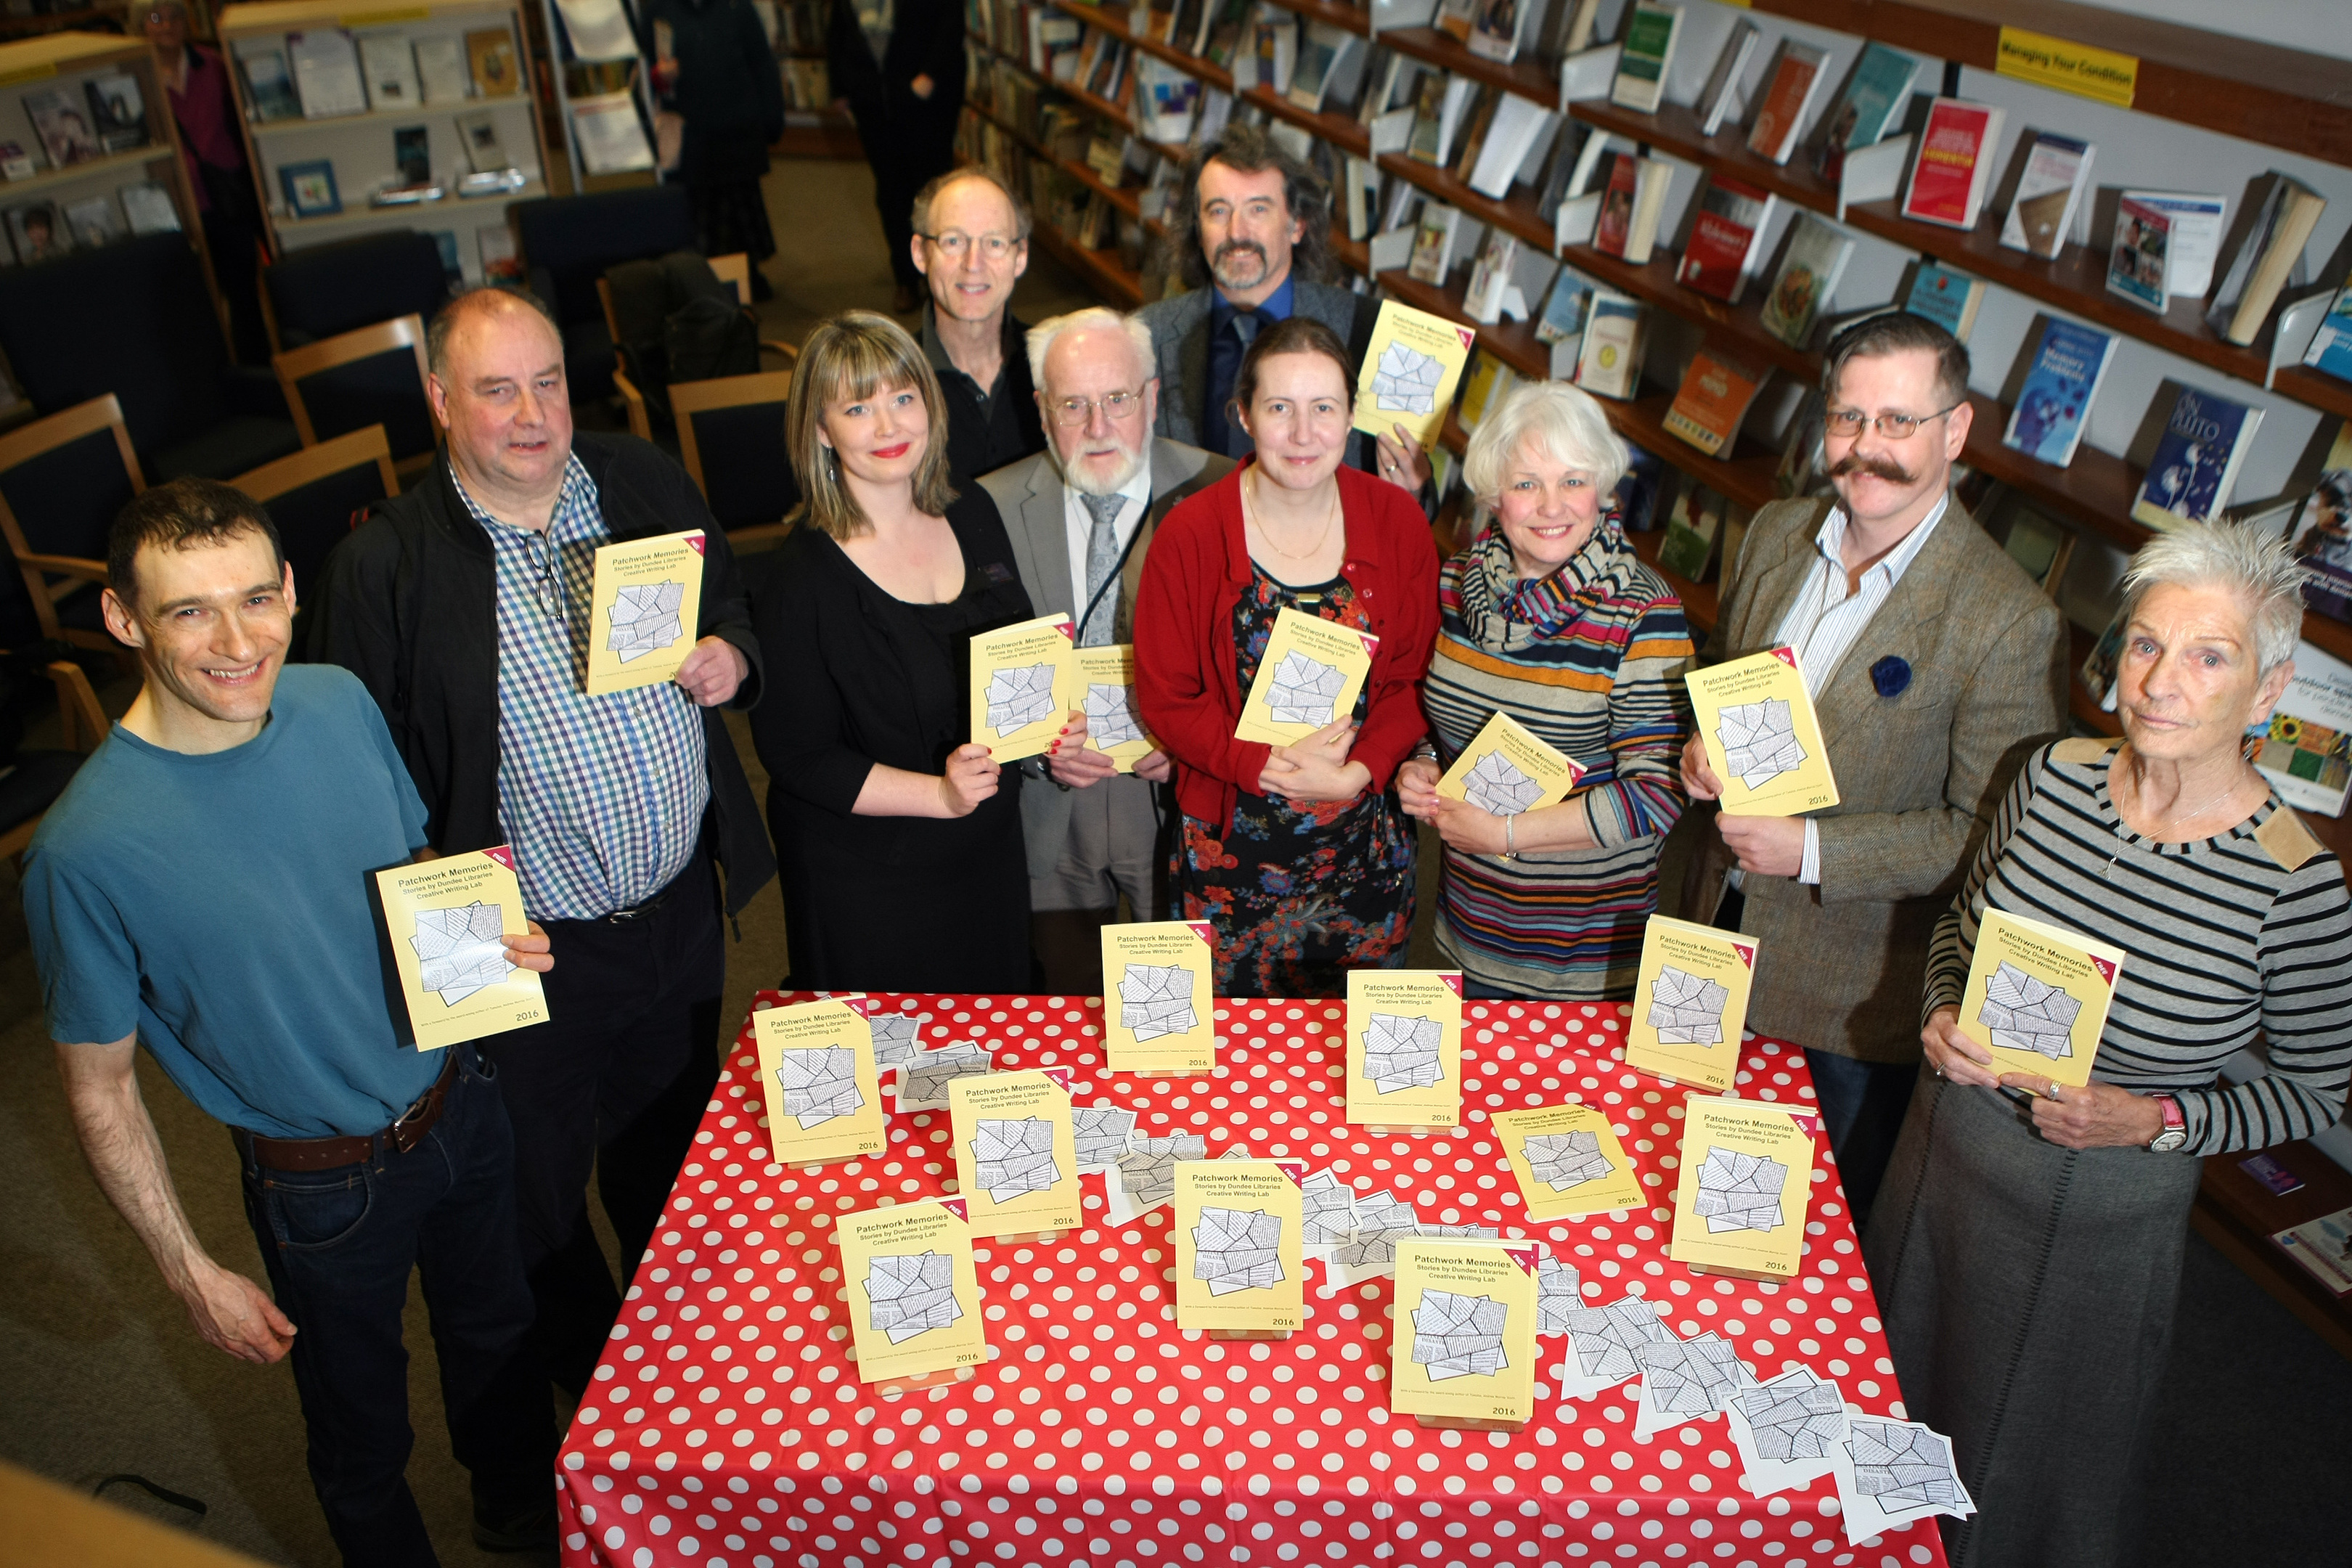 The 'memory' theme of the booklet is intended to celebrate Dundee's Dementia Library